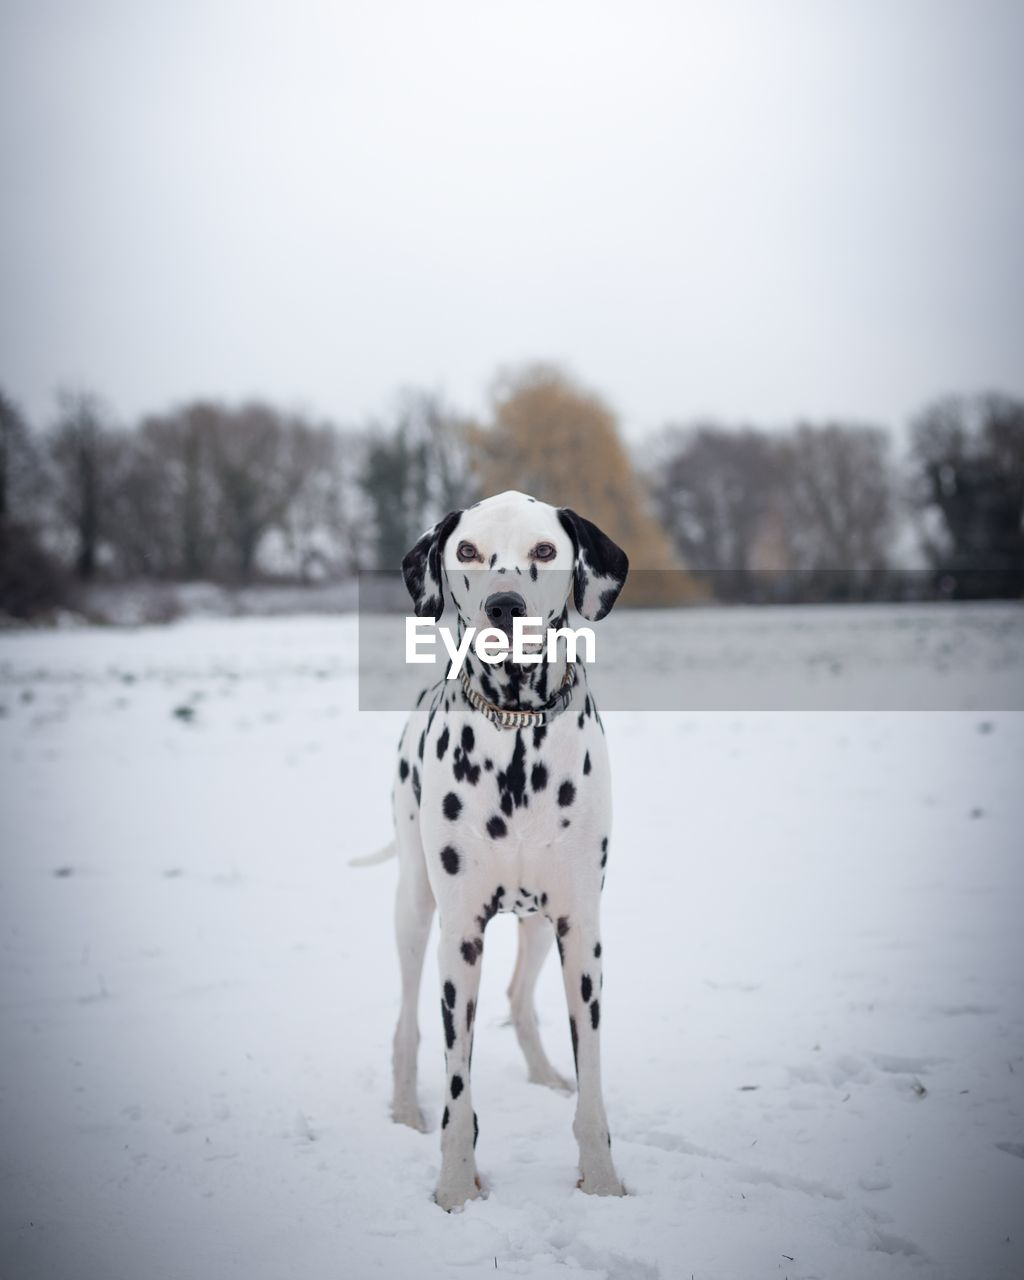 dog, canine, one animal, snow, dalmatian dog, animal themes, mammal, animal, pets, domestic animals, winter, domestic, cold temperature, vertebrate, white color, nature, looking at camera, spotted, day, no people, purebred dog